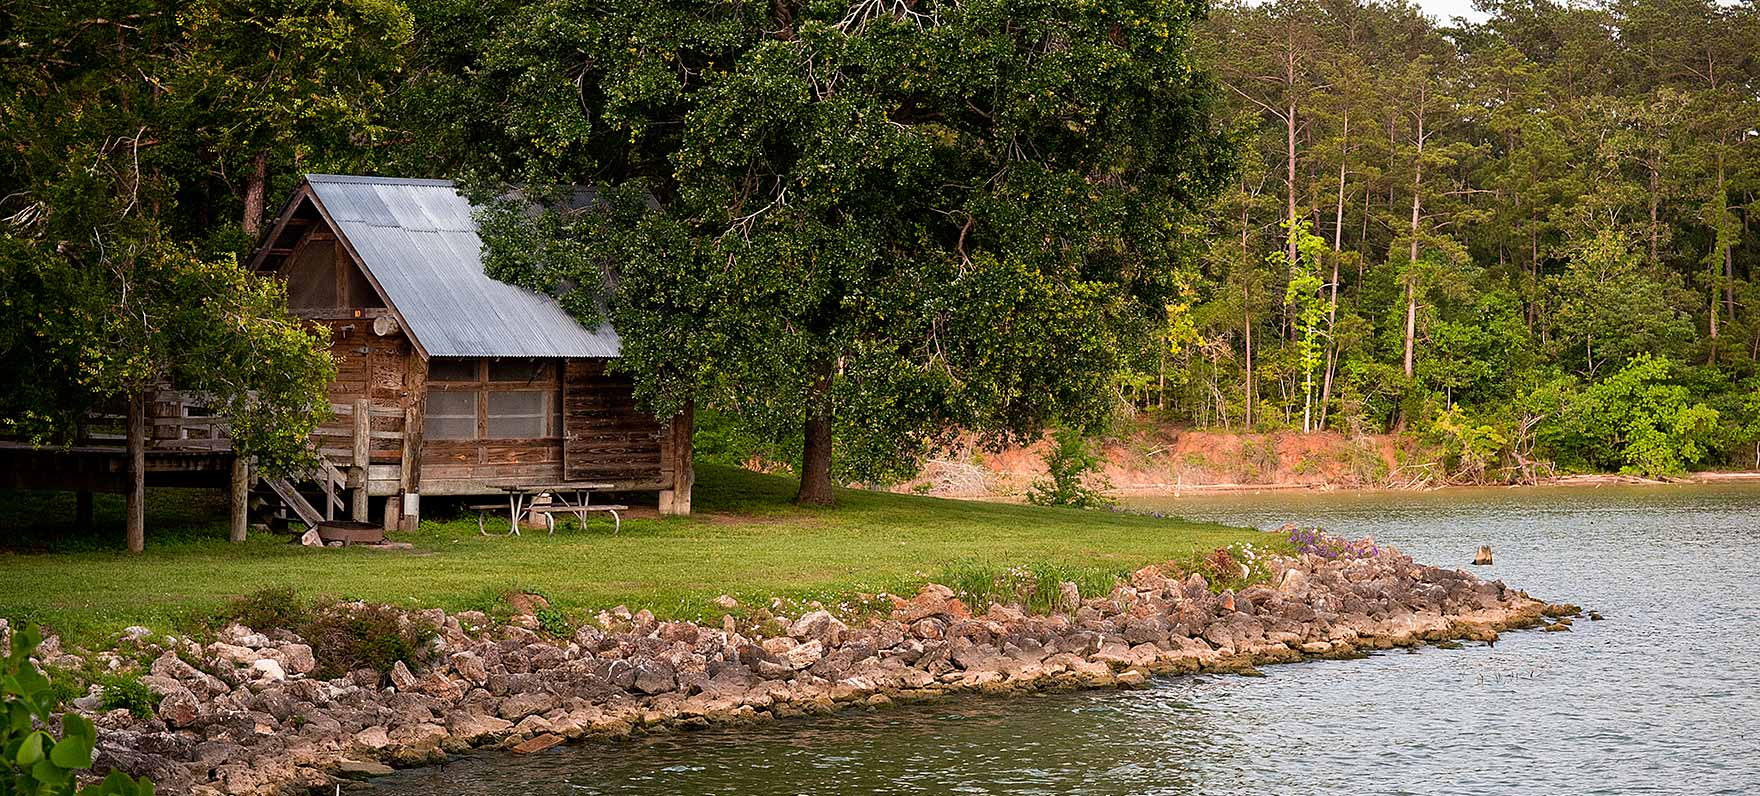 A picturesque place to chill at Lake Livingston State Park.